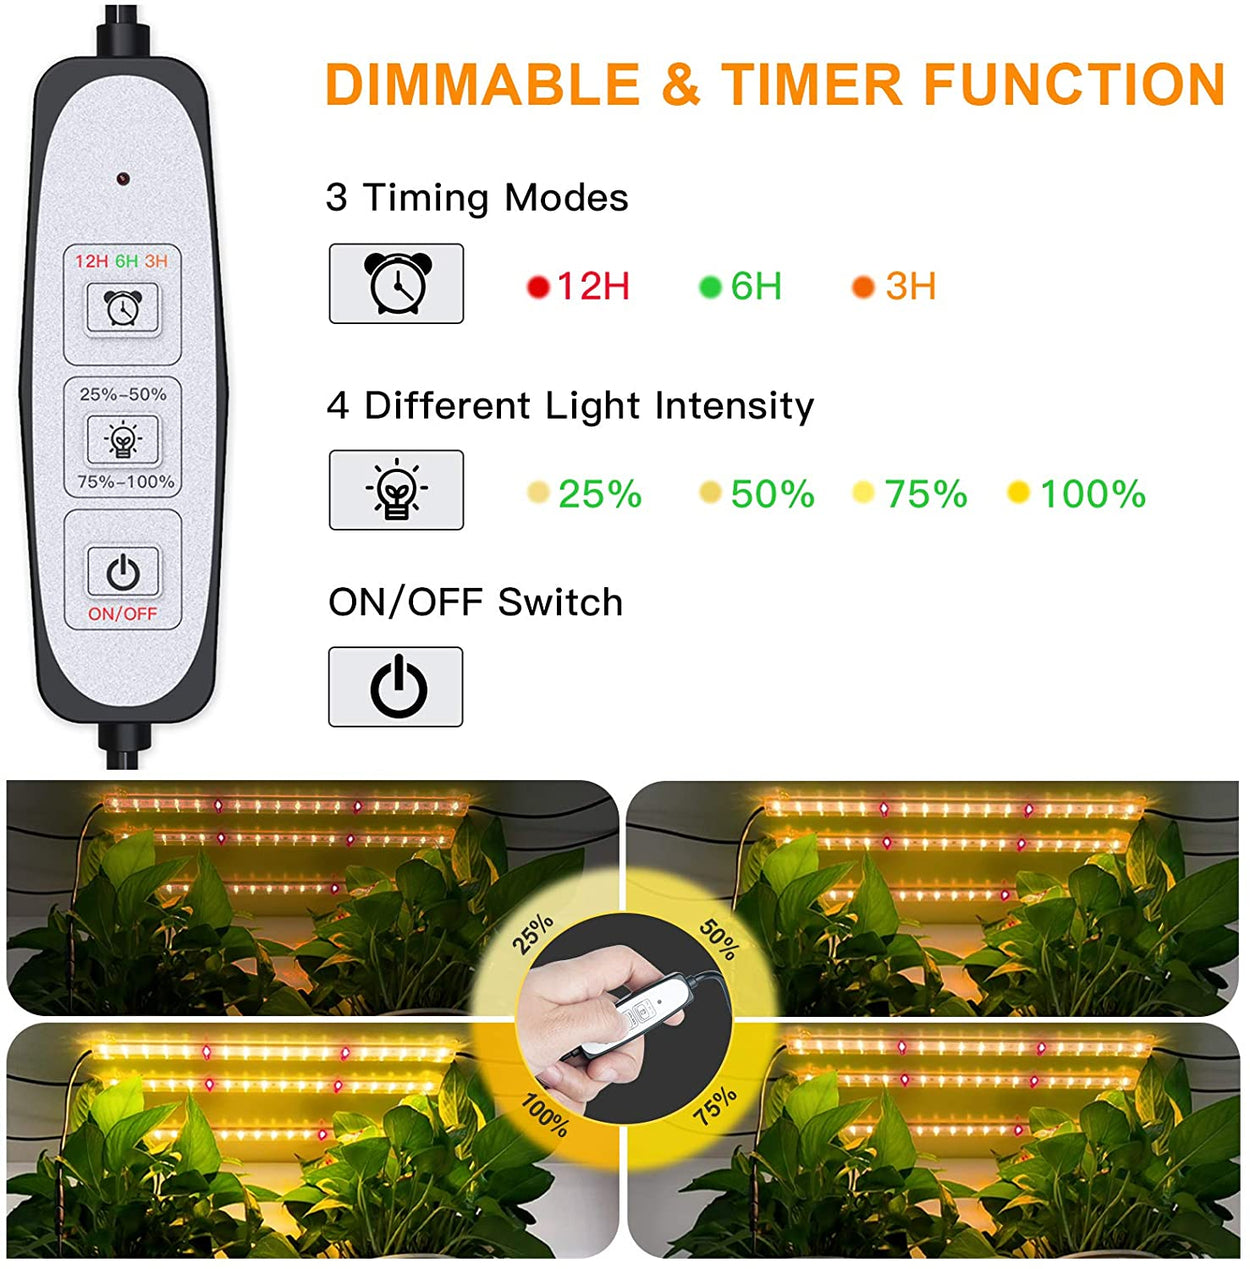 50W LED Plant Grow Light Strips,5 pcs 16 Inches Full Spectrum Plant Lights for Indoor Plants with Auto ON/Off 3/6/12H Timer, 4 Dimmable Levels,Grow Lights for Seed Starting,Hydroponics